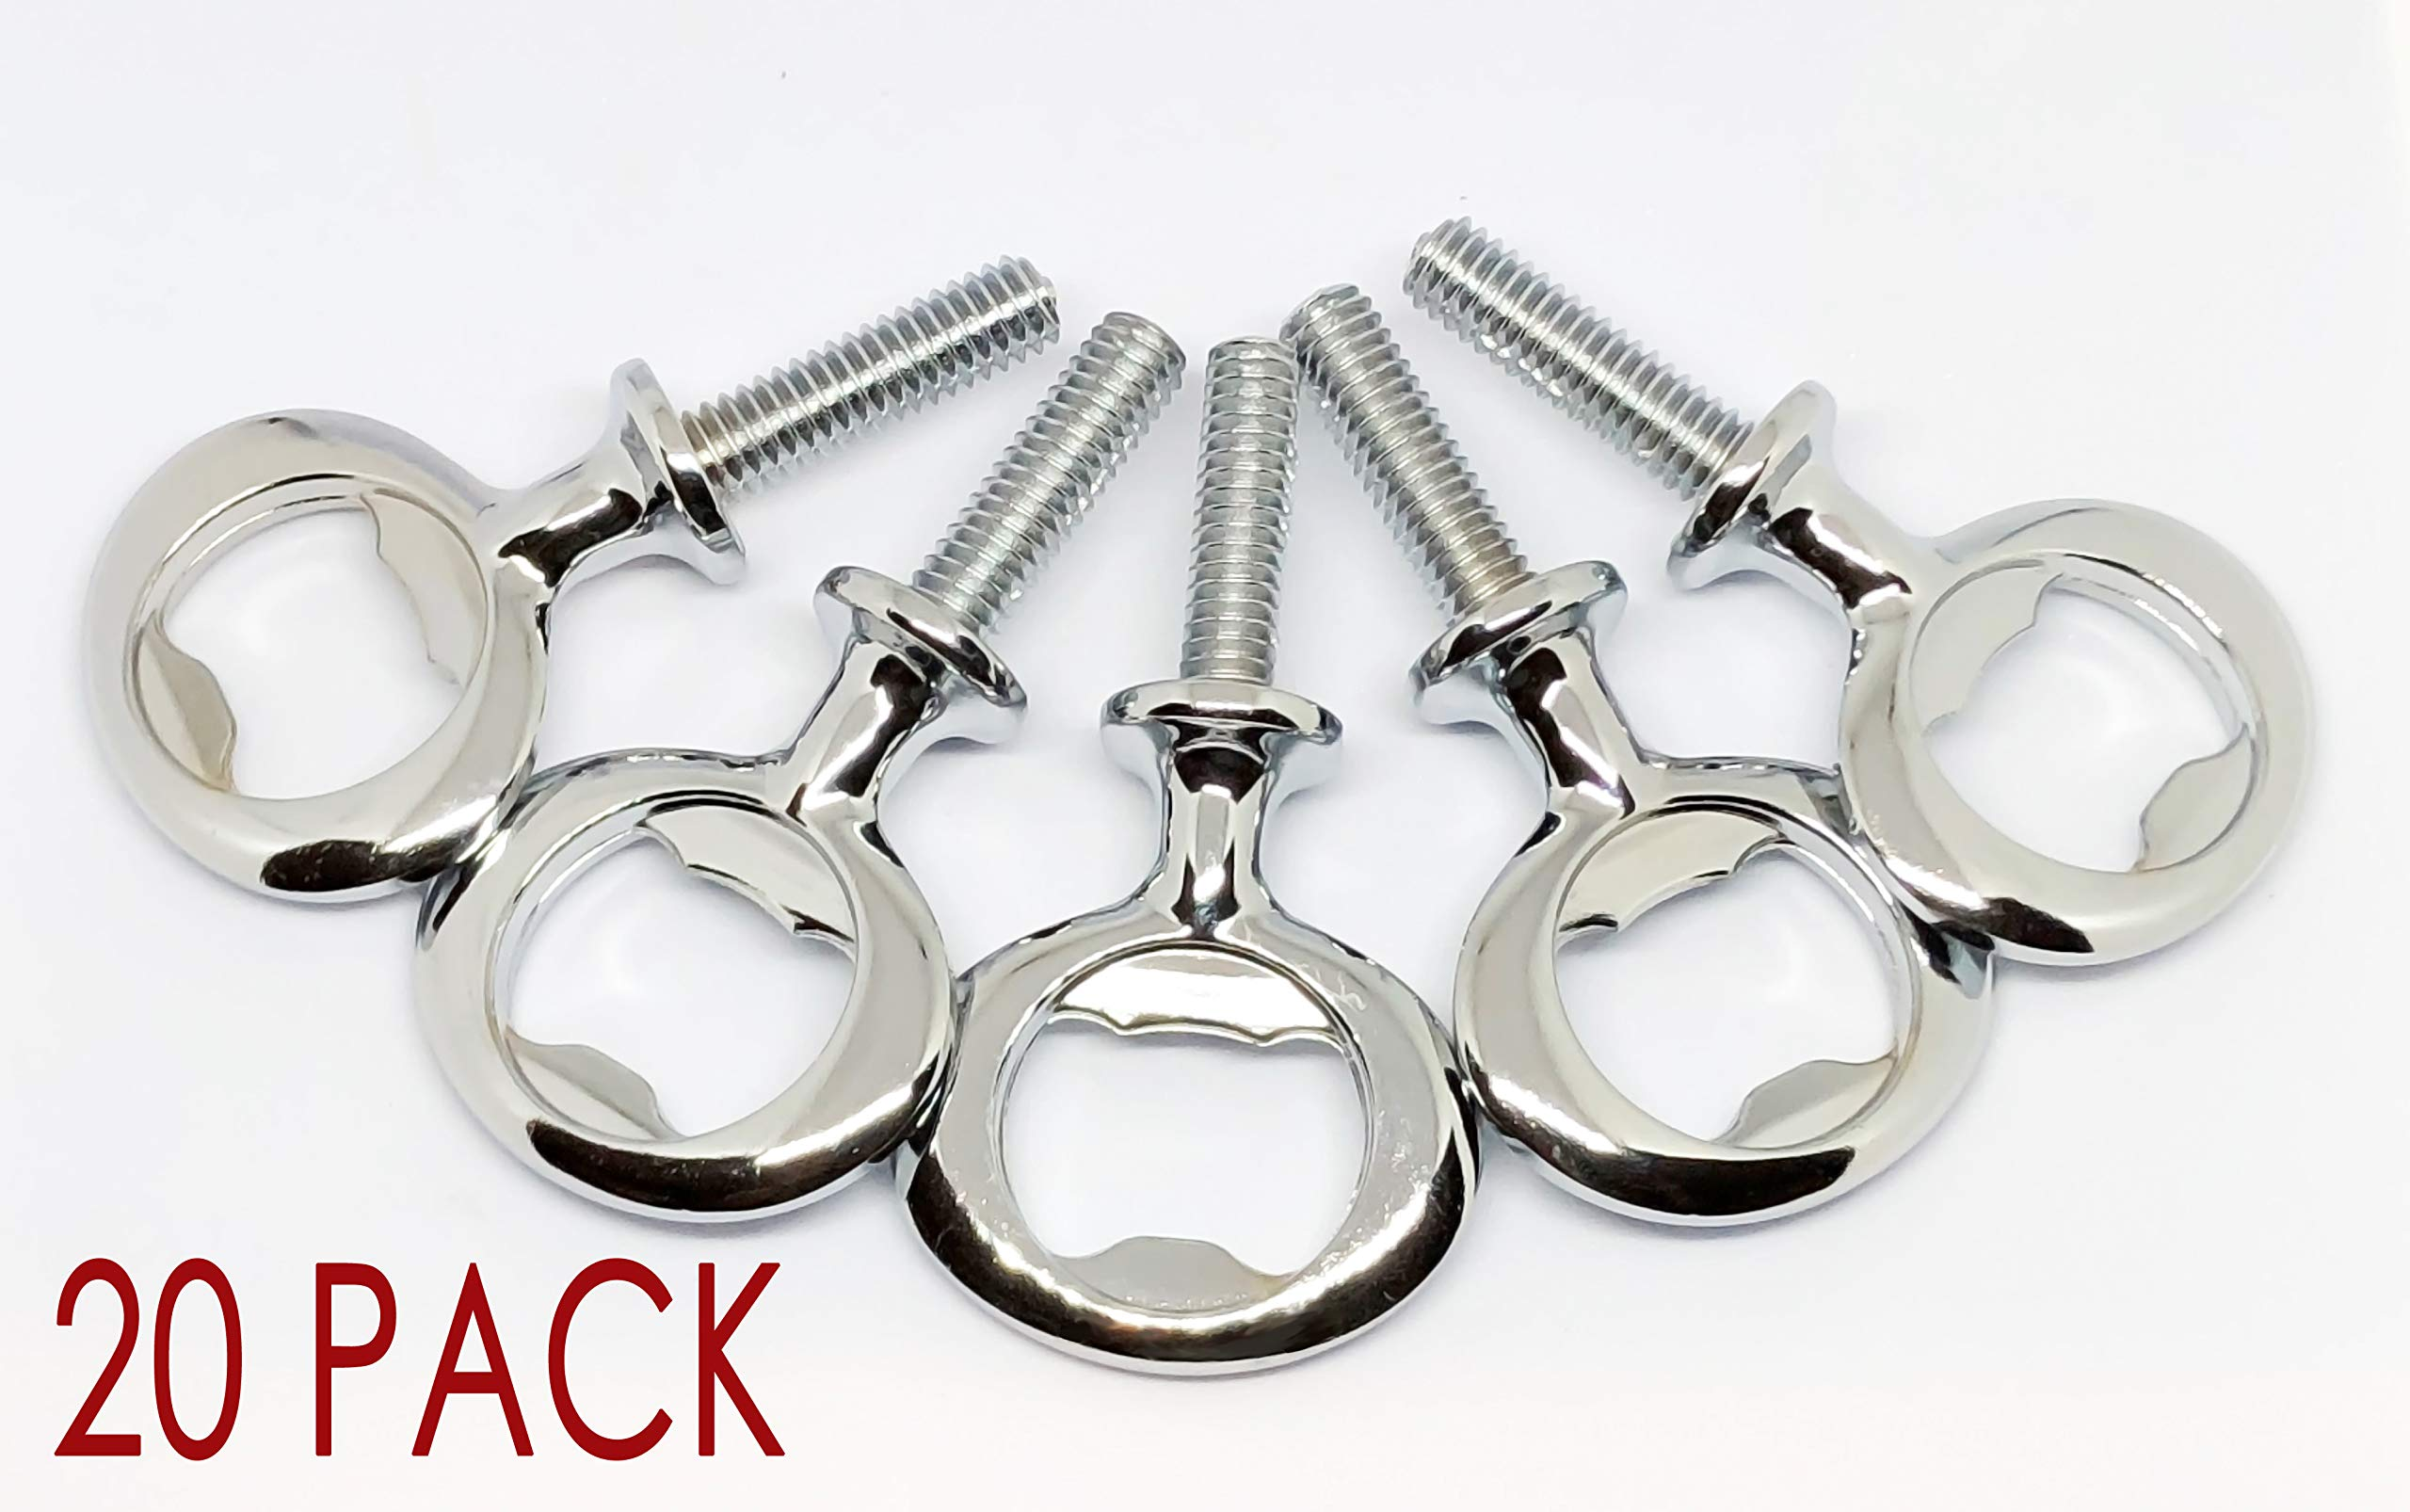 Chrome Bottle Opener Hardware Kit for Wood Turning 20 Pack by C and C Stock (Image #1)